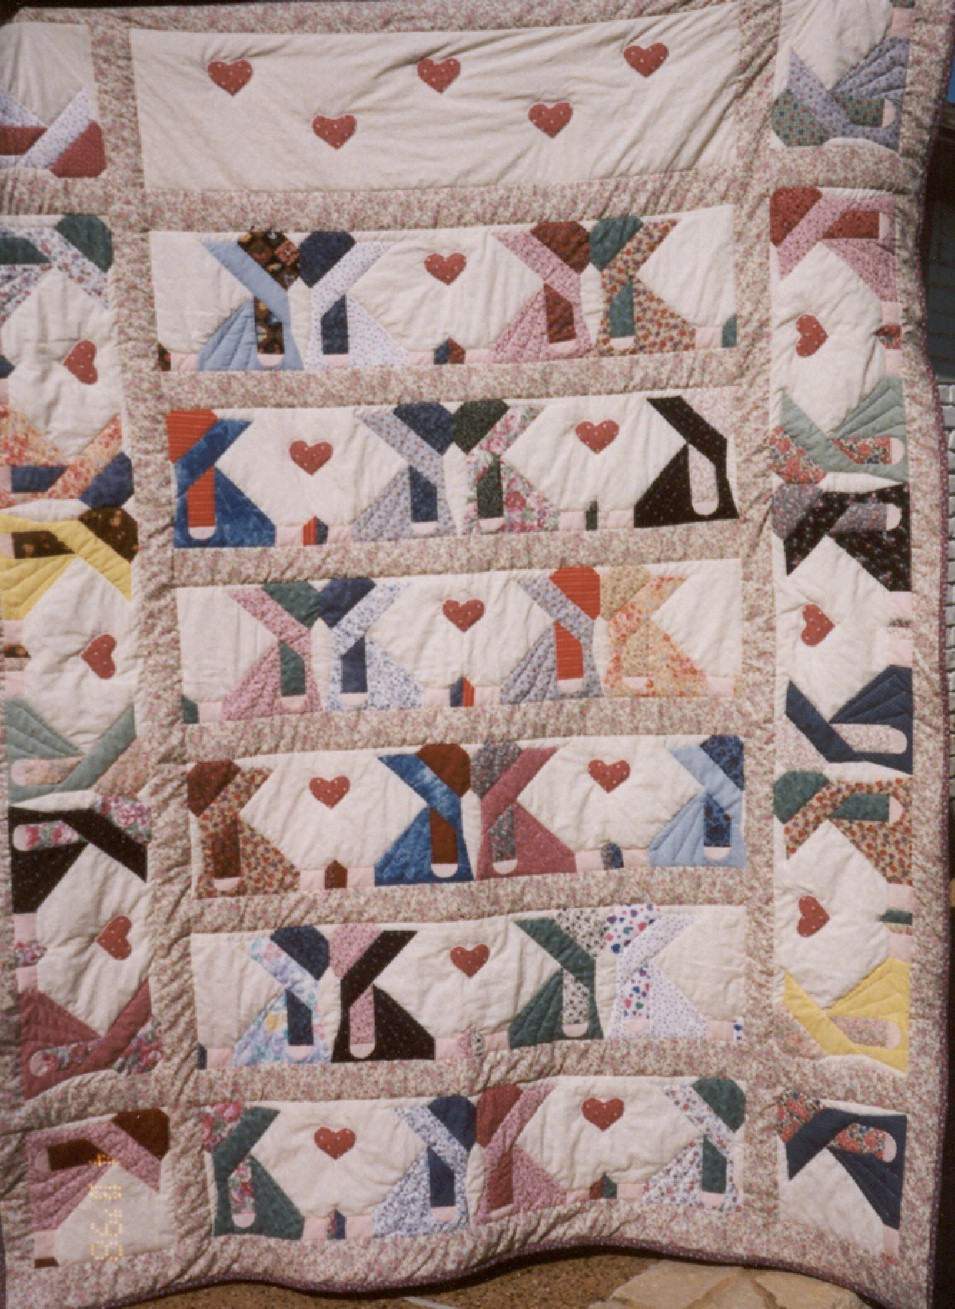 appliqued quilts, handmade quilts for sale, rag quilts patterns, handmade quilts